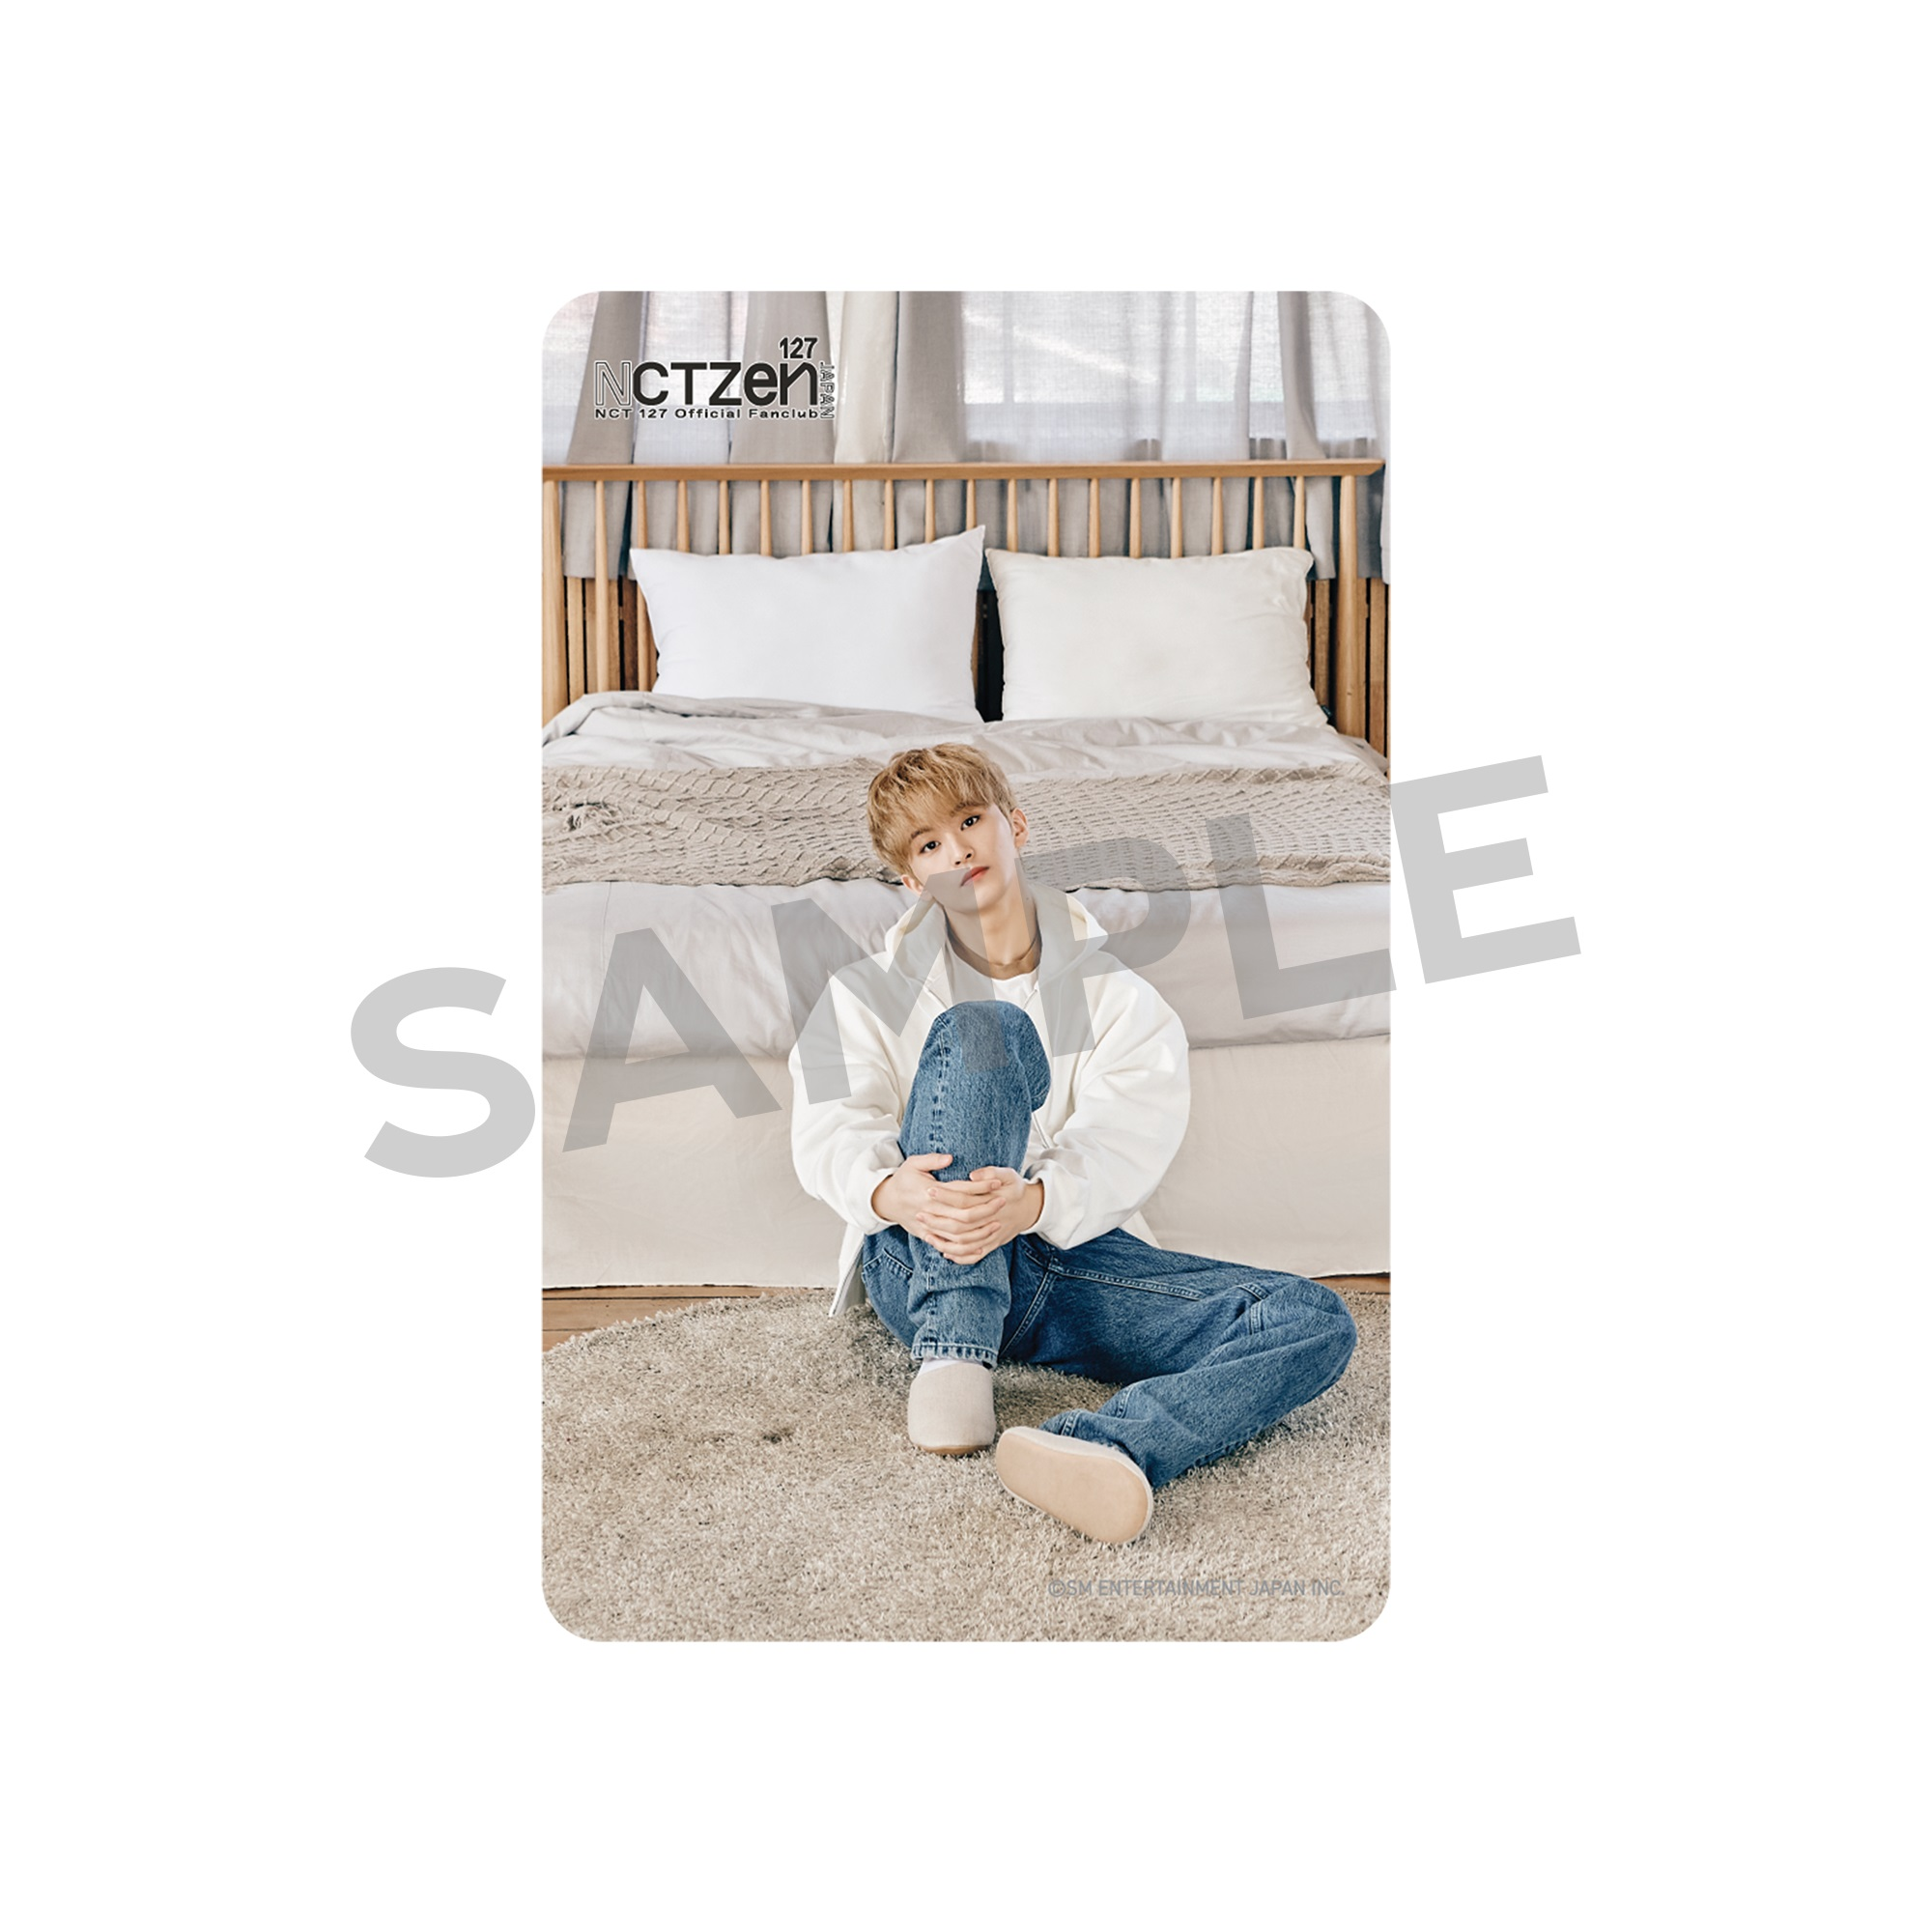 【NCT 127】『NCT 127 OFFICIAL BOOK Vol.4』グッズを、メンバー別に詳しく紹介!_9_4